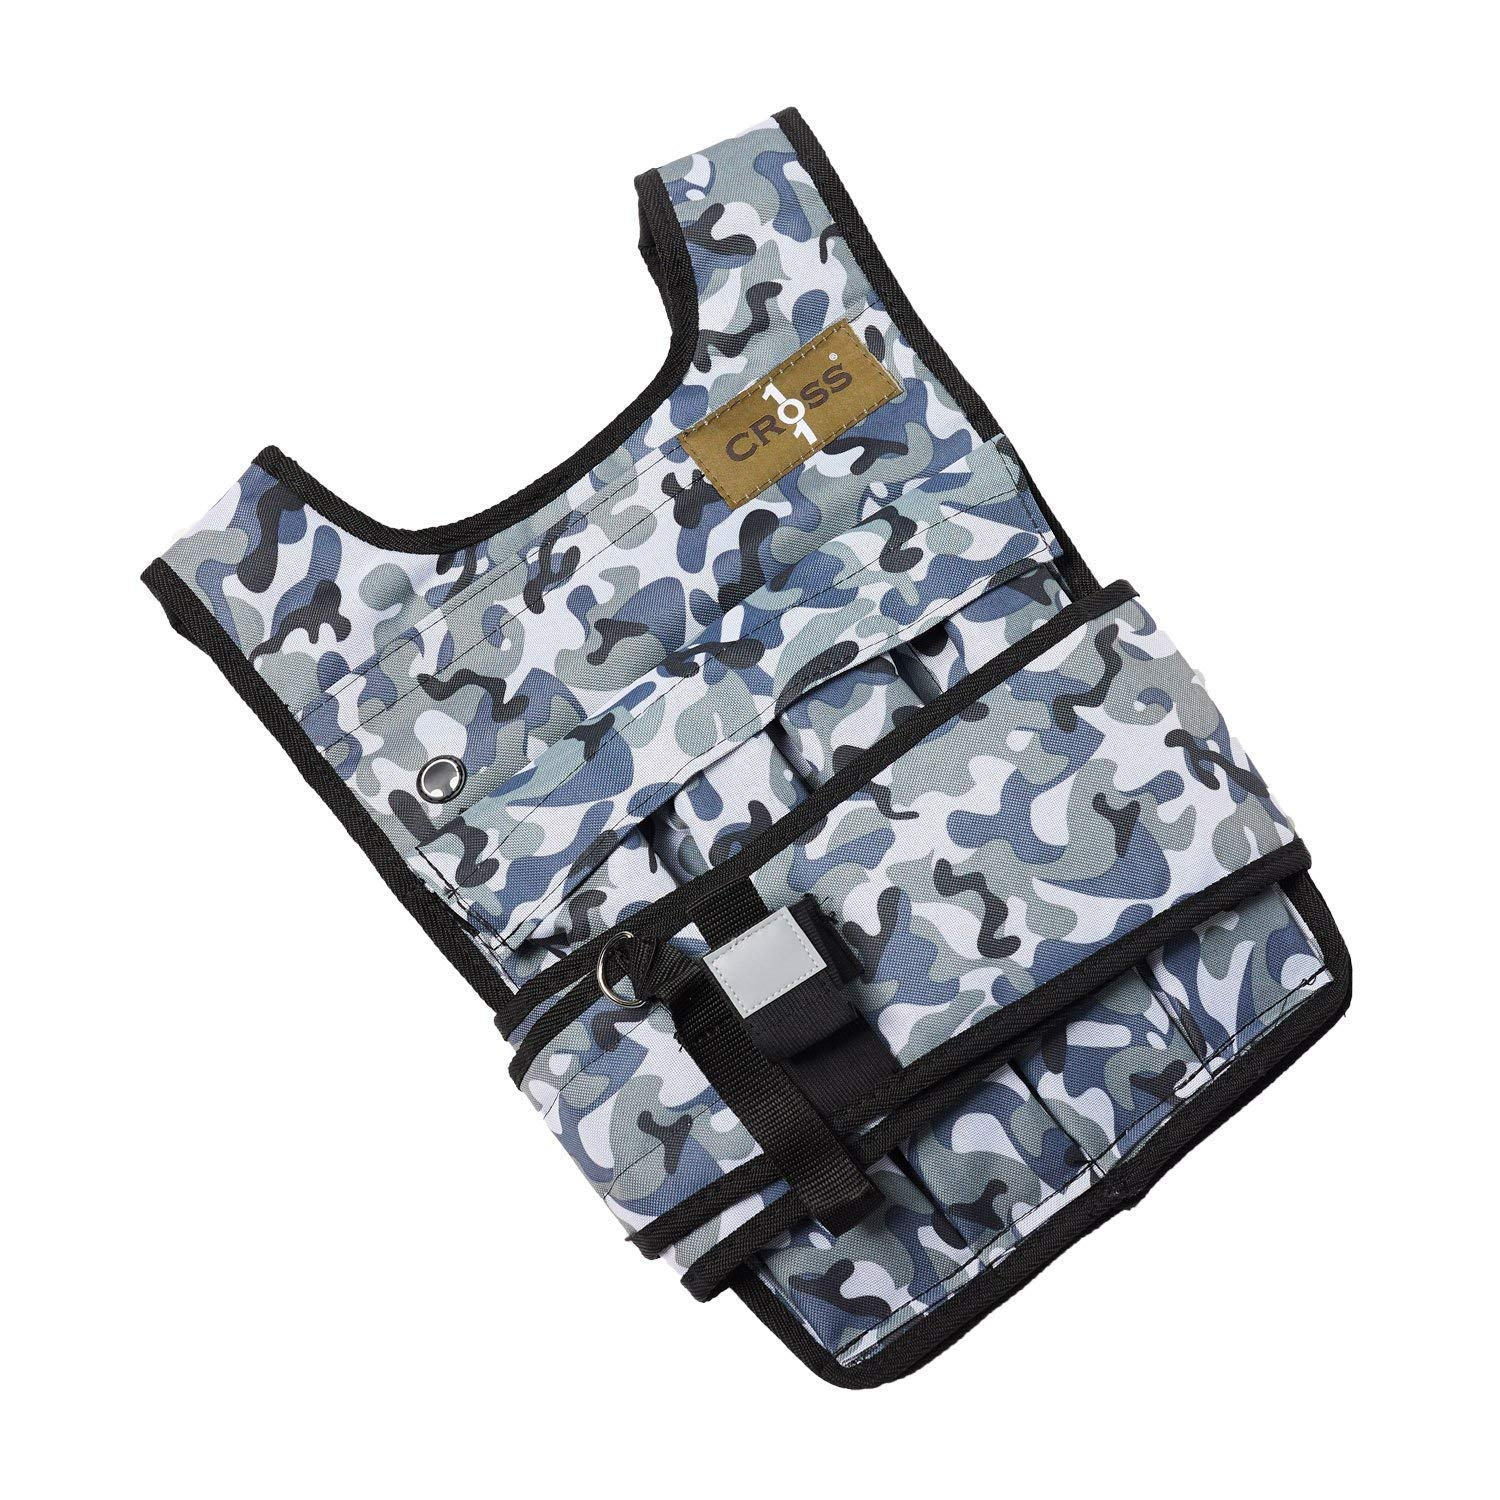 CROSS101 Adjustable Camouflage Weighted Vest 12LBS - 140LBS (Arctic - 20LBS)